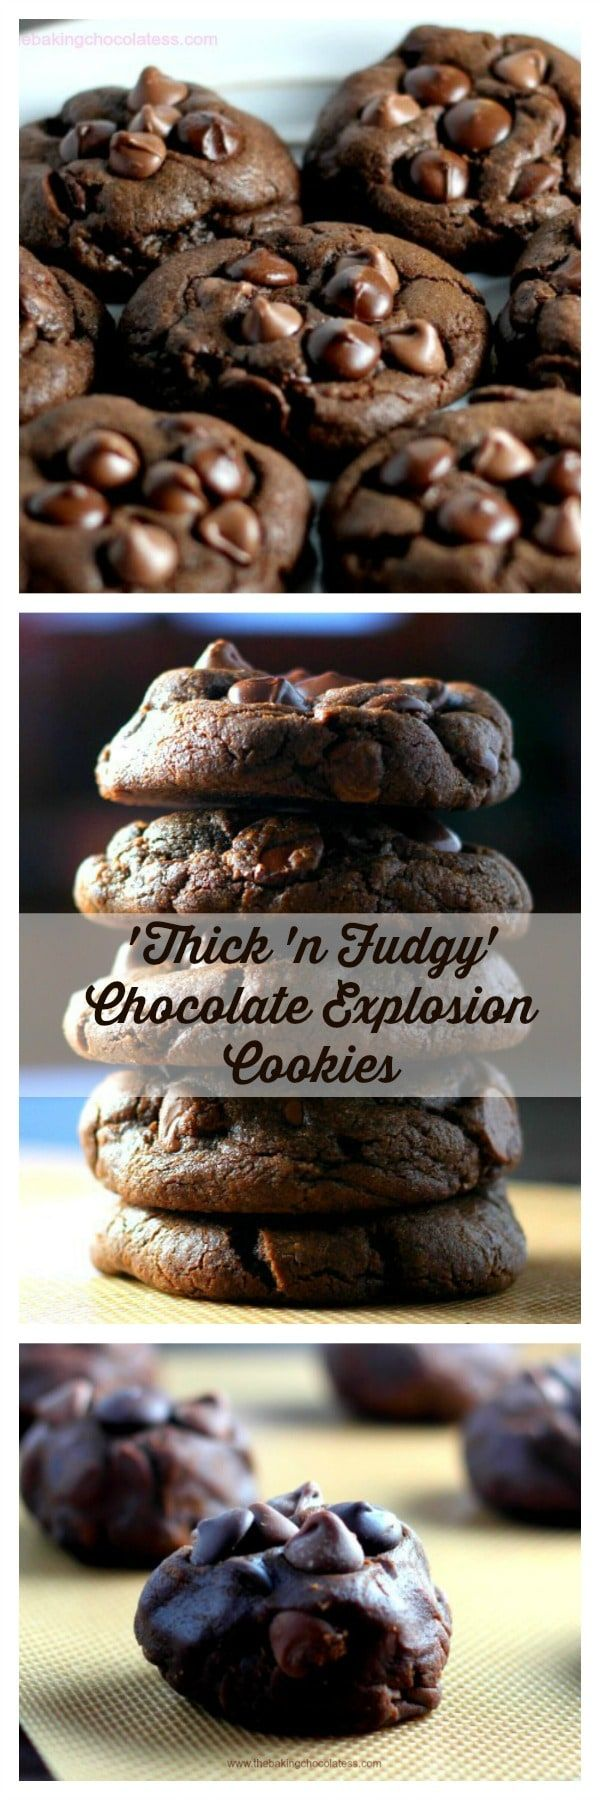 'Thick 'n Fudgy' Chocolate Explosion Cookies. Hershey Spreadable Chocolate plus two types of chocolate chips. No reviews.